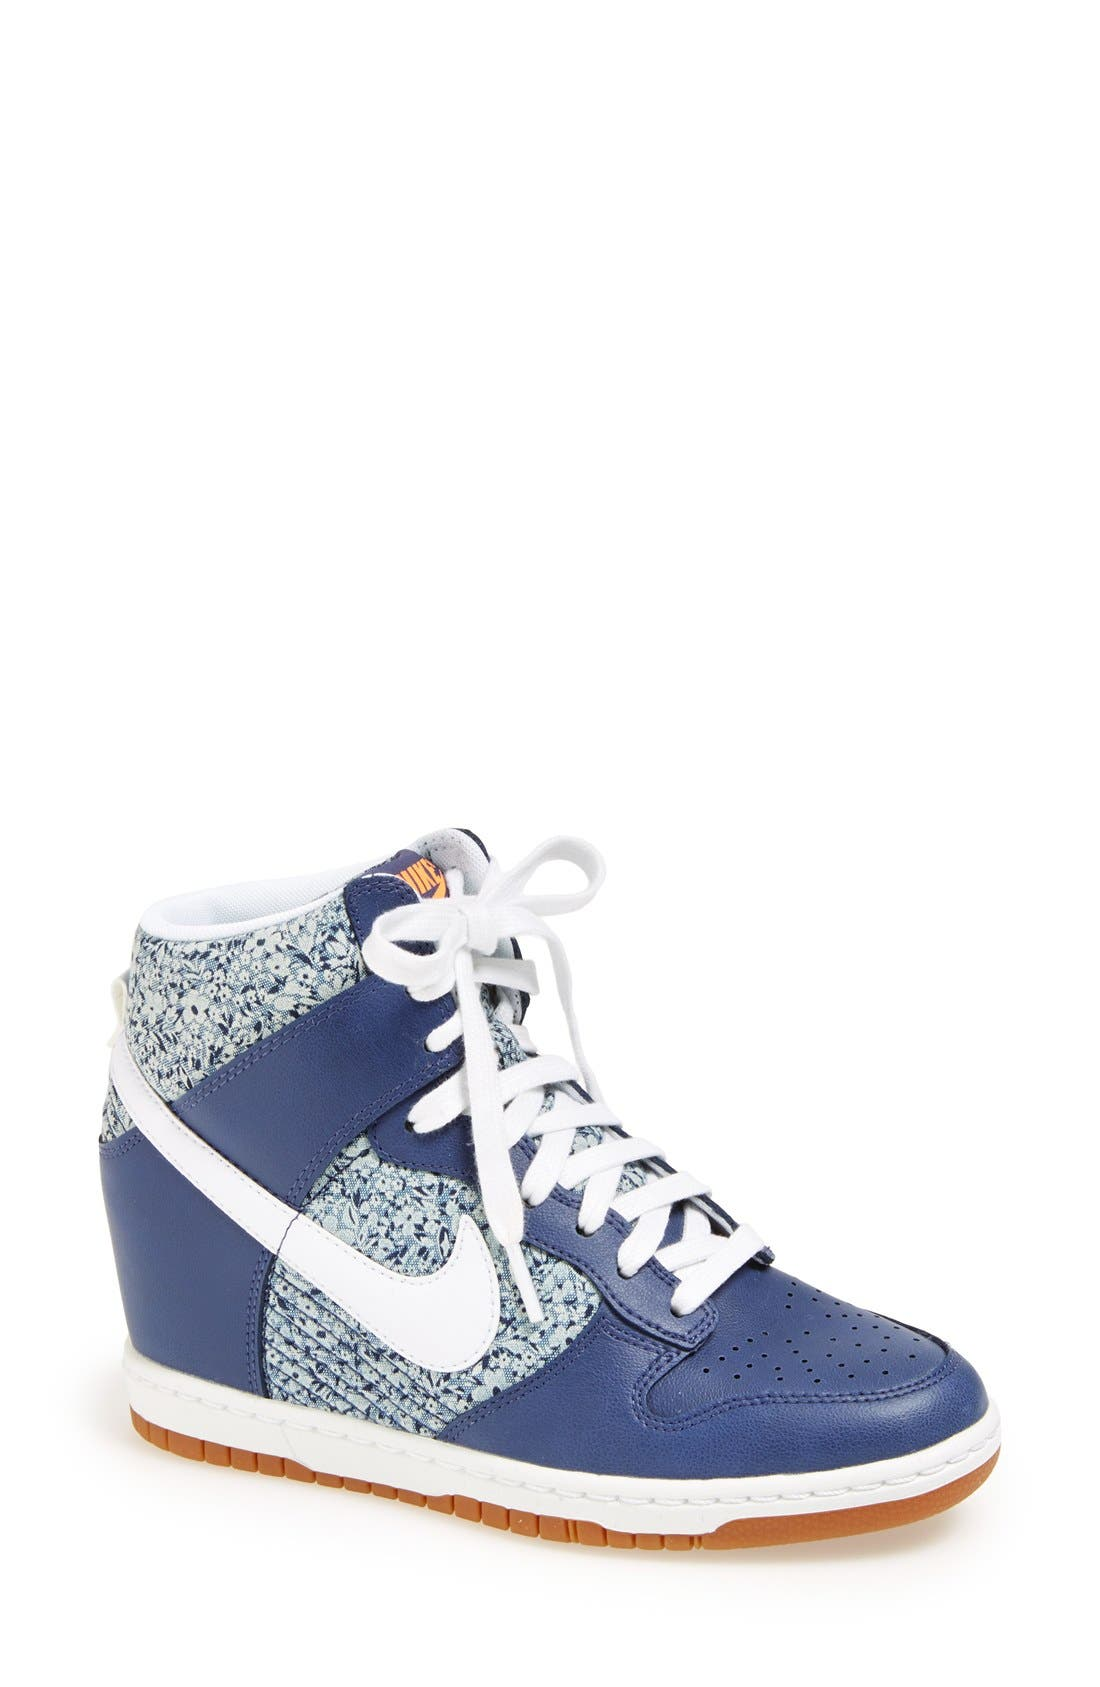 Main Image - Nike 'Dunk Sky Hi Liberty' Hidden Wedge Sneaker (Women)